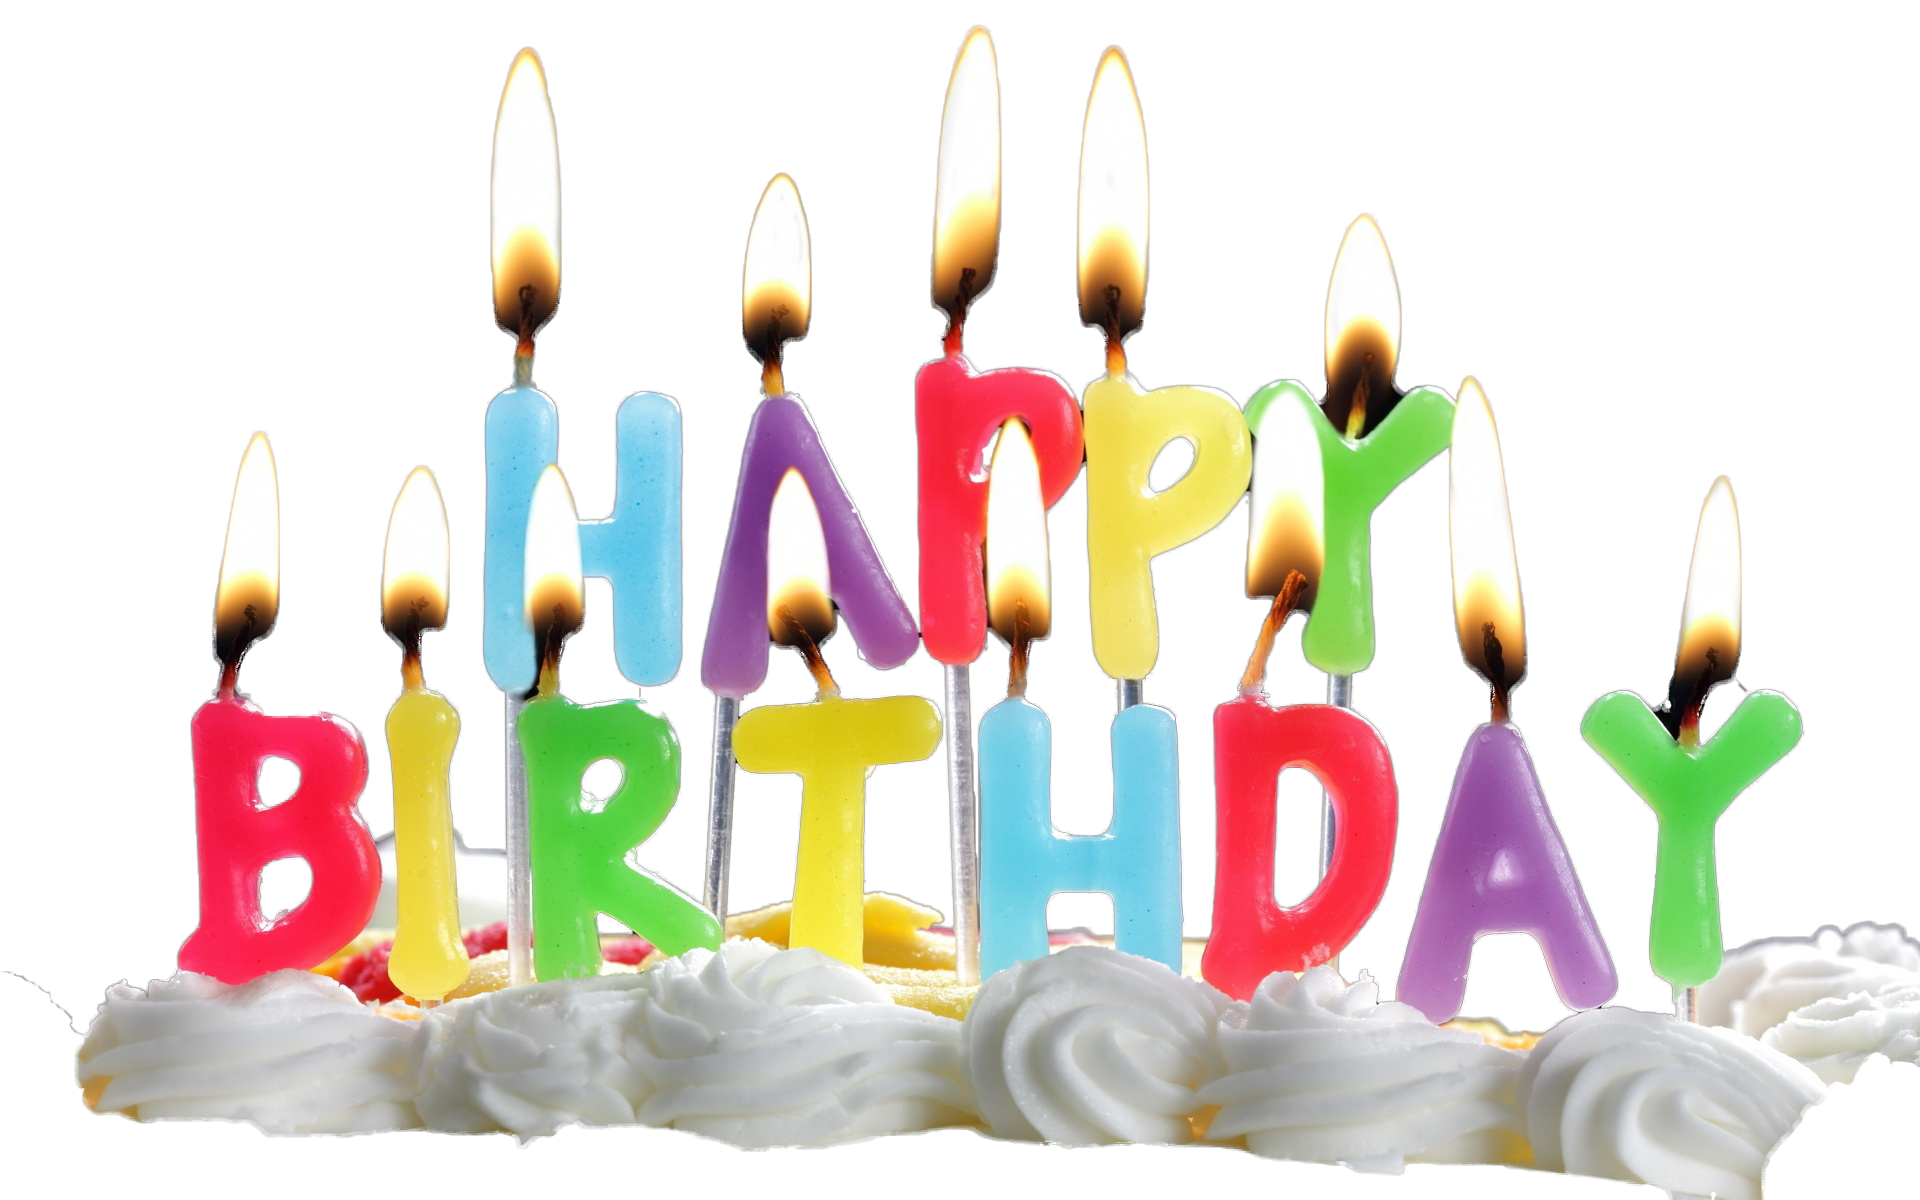 1920x1200 Download Birthday Candles Transparent Hq Png Image Freepngimg